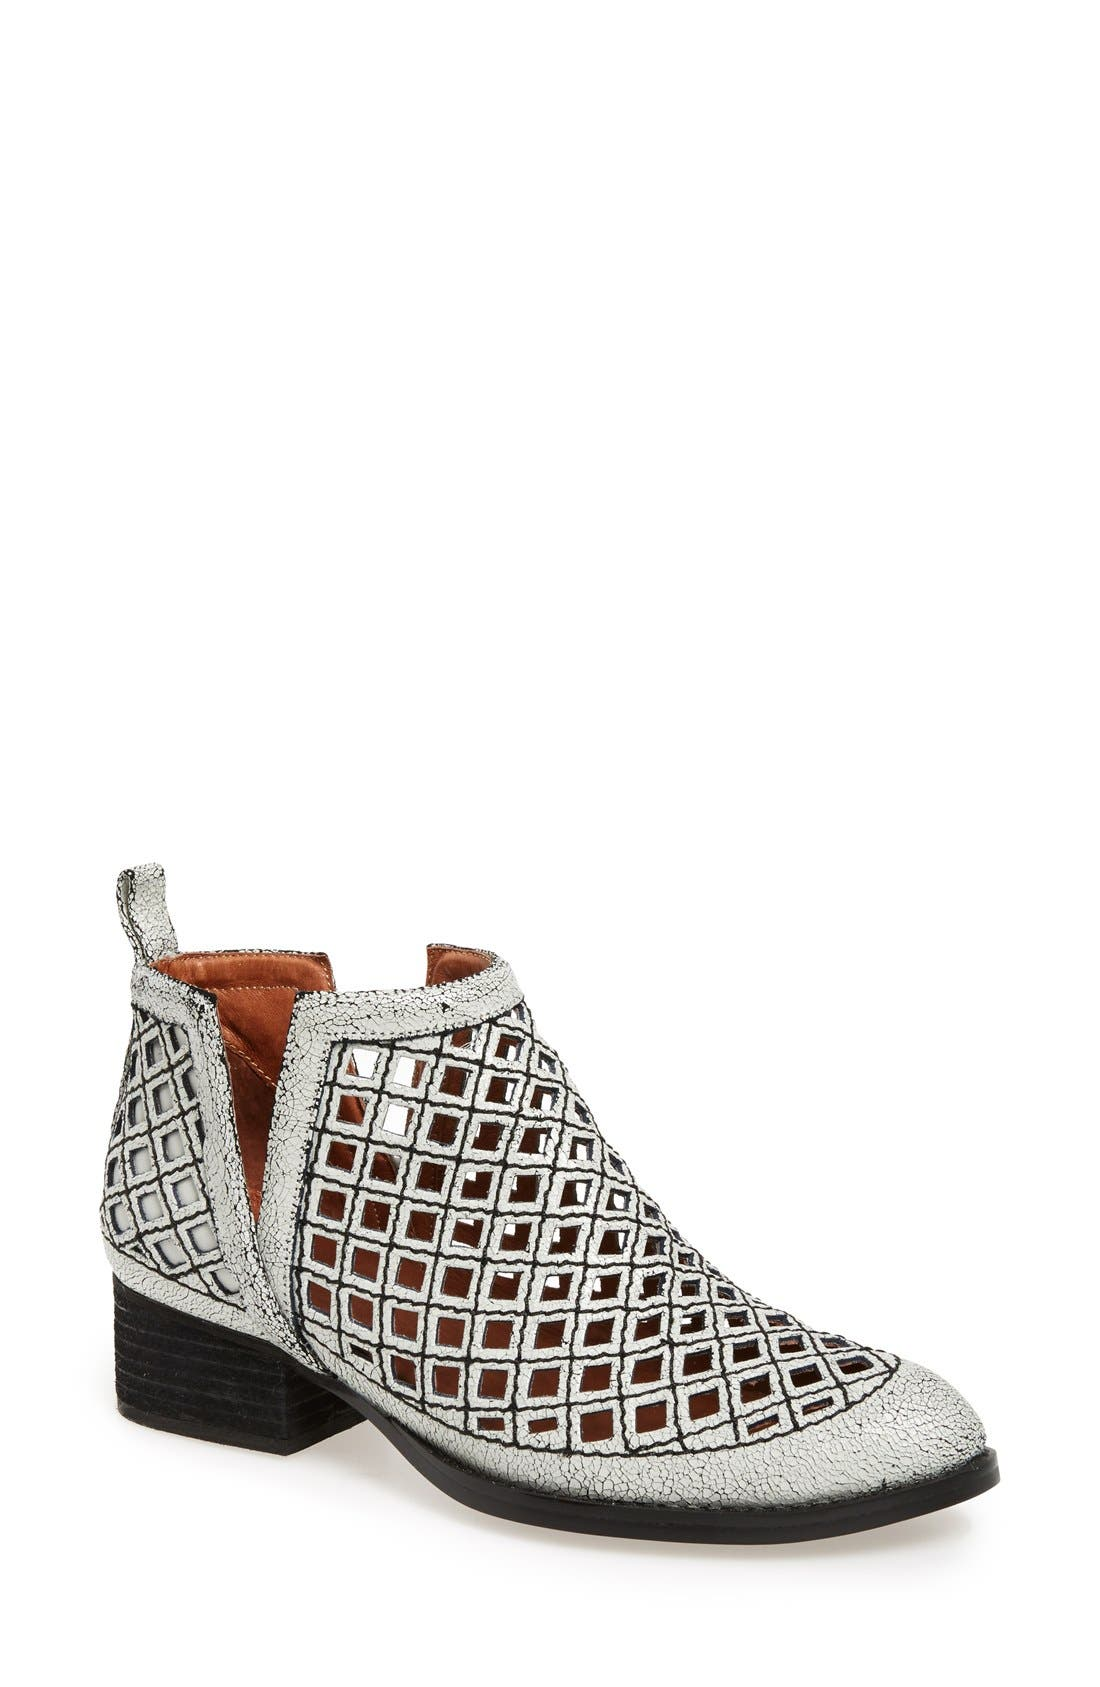 Main Image - Jeffrey Campbell Taggart Ankle Boot (Women)